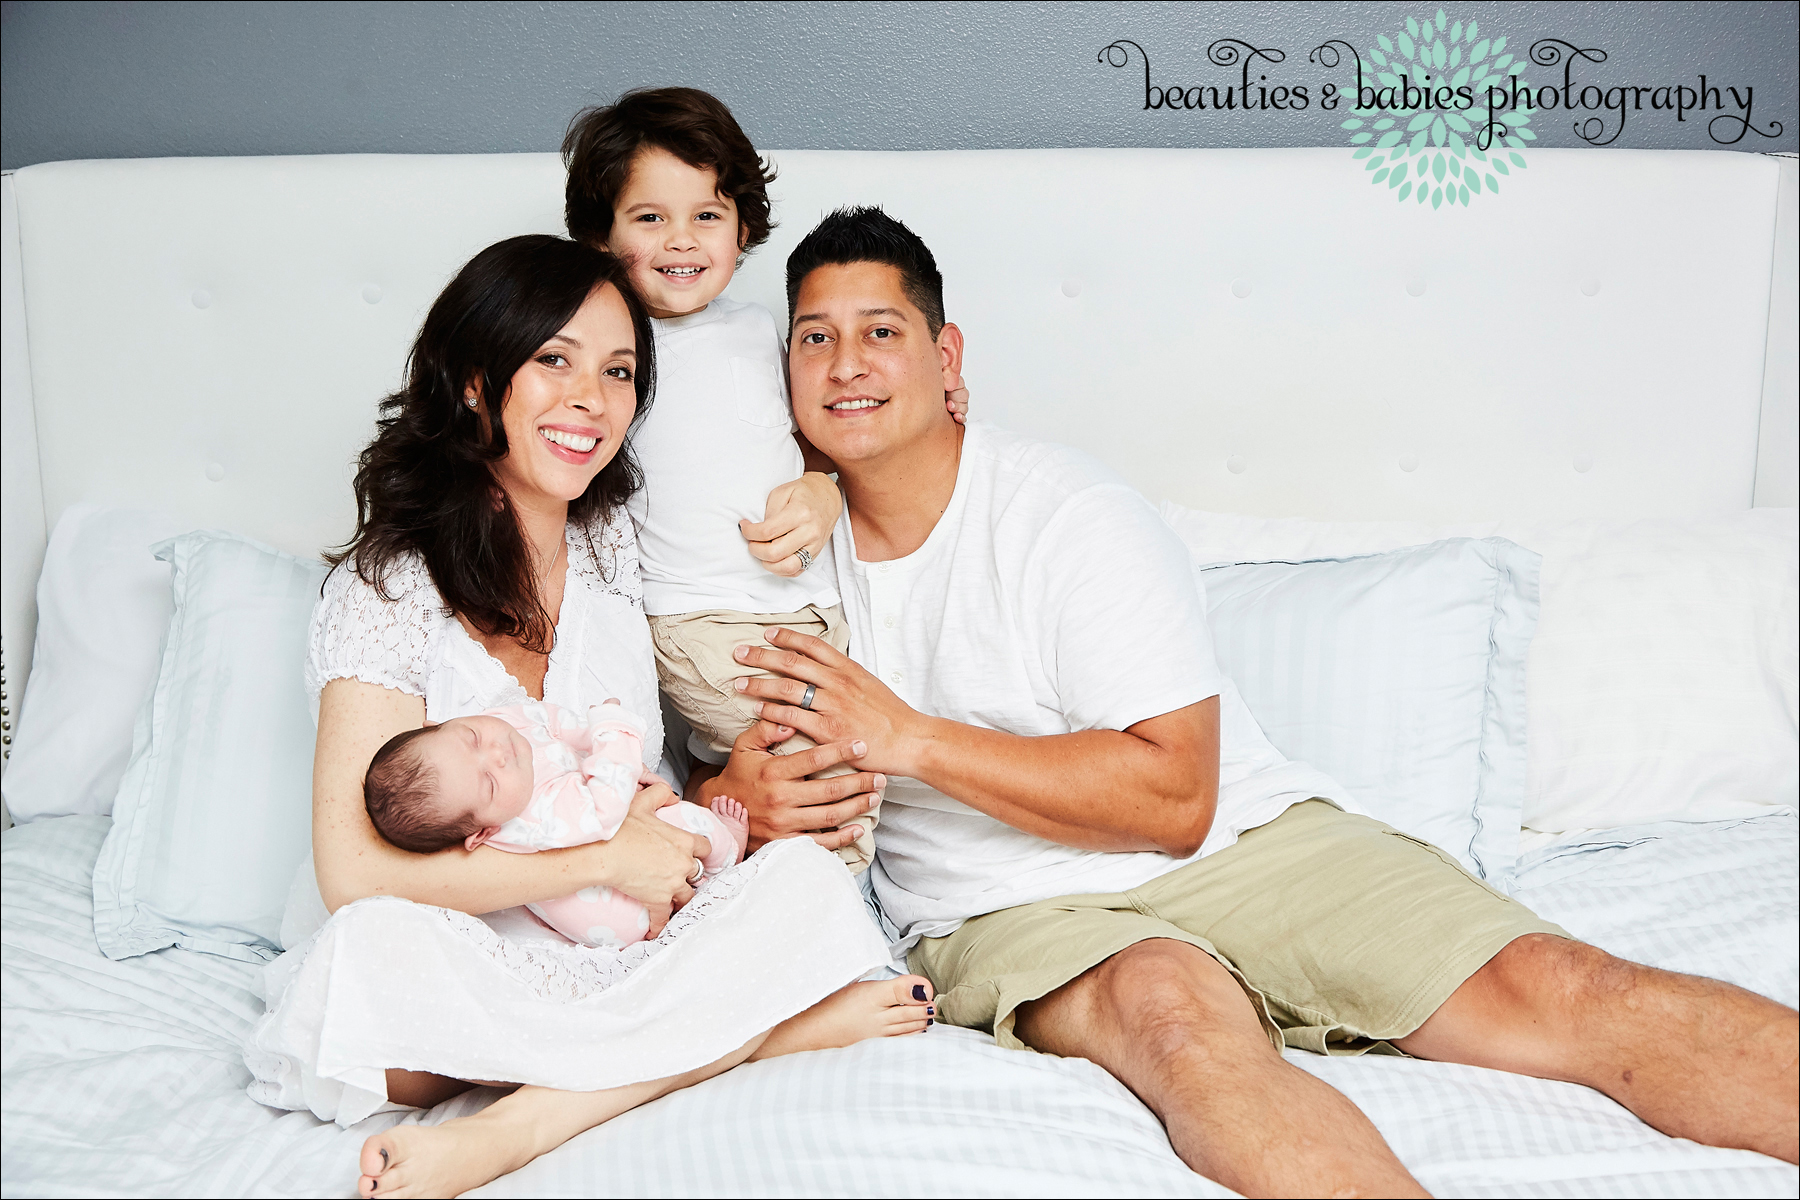 newborn baby photographer Los Angeles, family and baby photography Los Angeles professional photographer